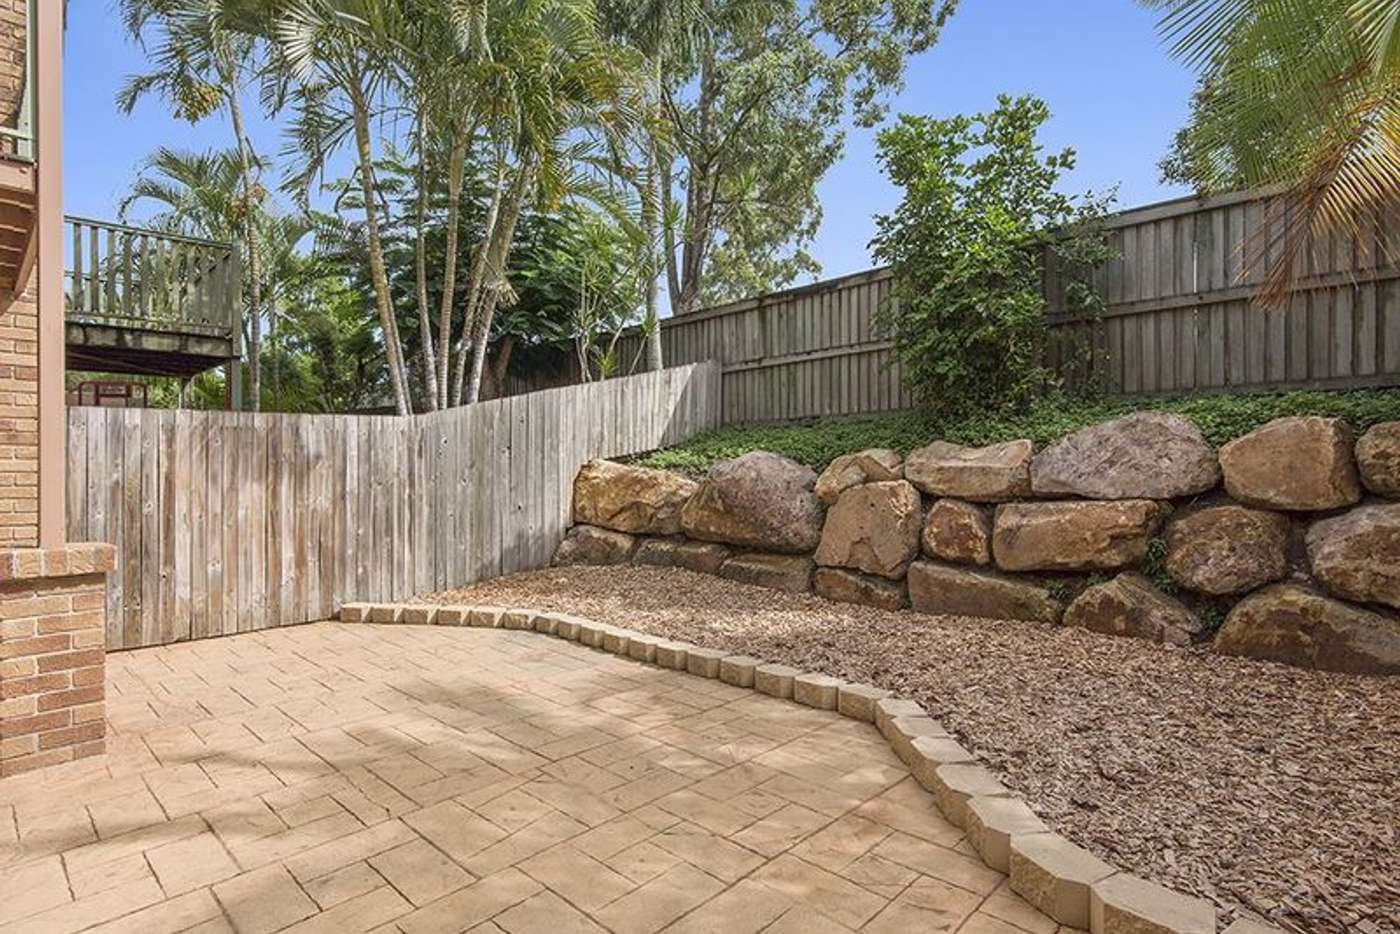 Main view of Homely house listing, 9/18 Swan Lake Crescent, Calamvale QLD 4116